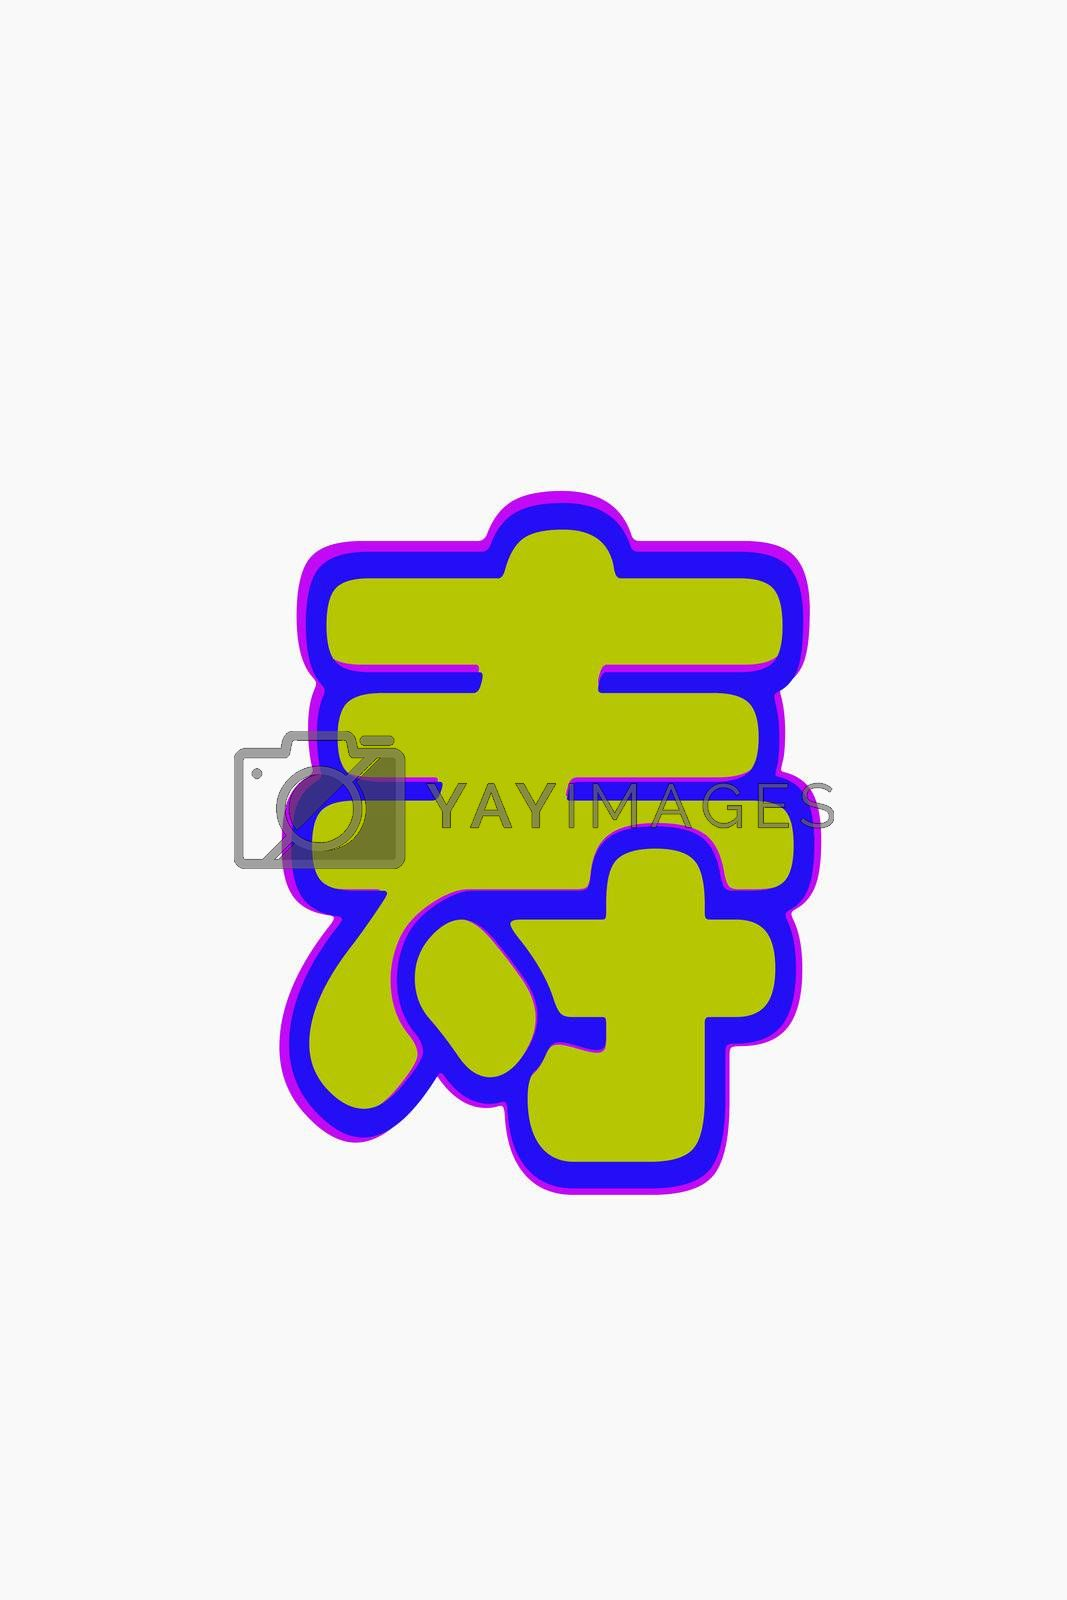 Royalty free image of Chinese characters of LONG LIFE  by ibphoto